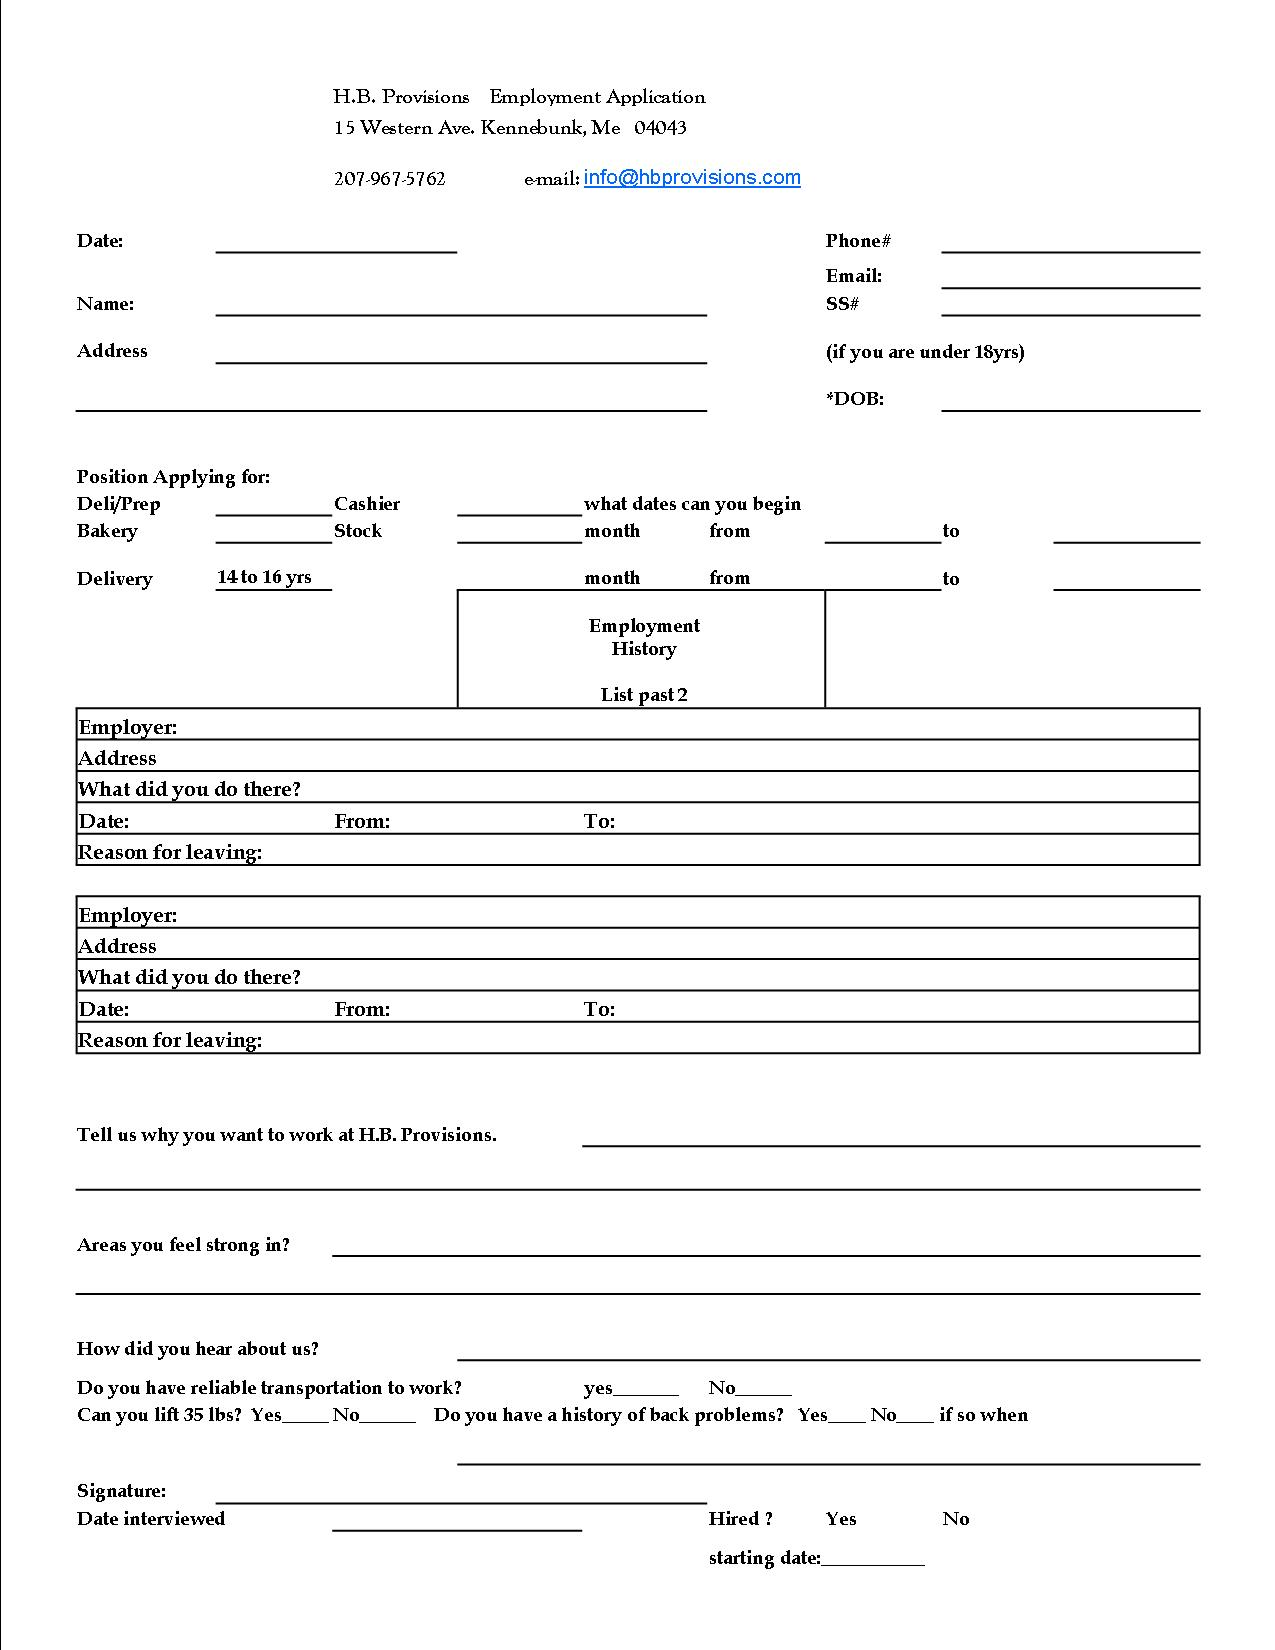 application for employment help